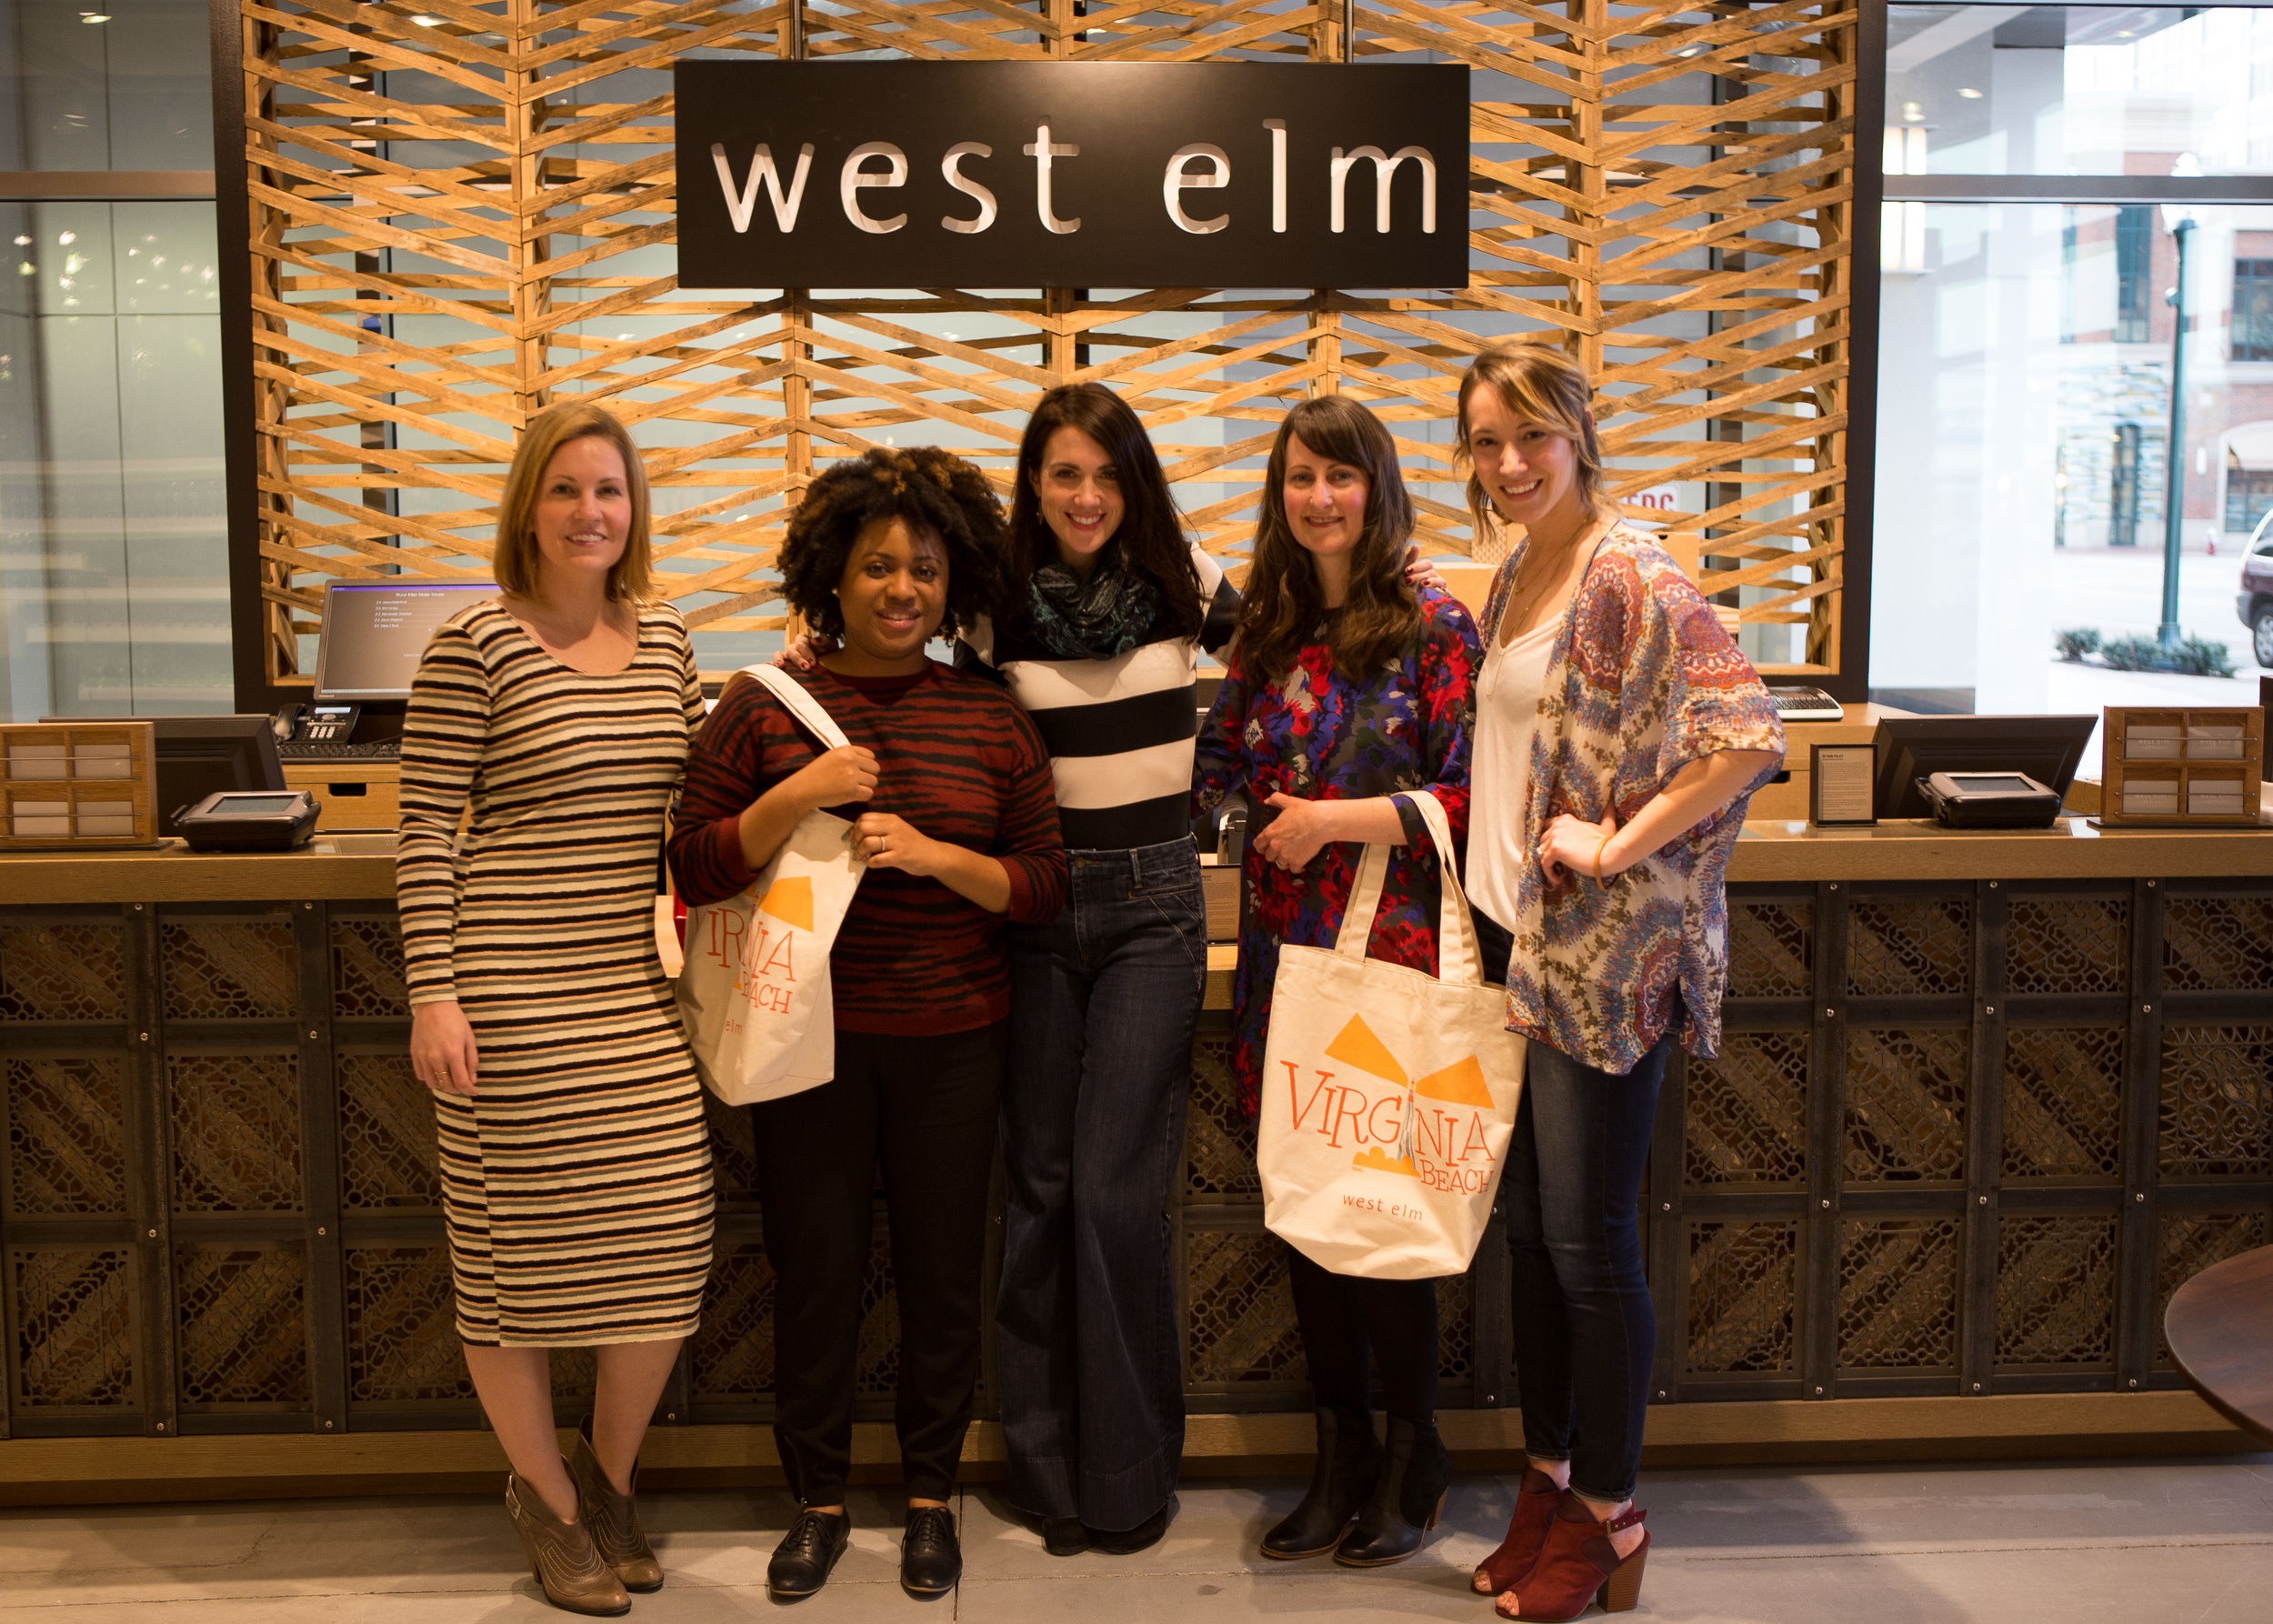 Christina, Jonna, Nicole, Shelby and Kristen at the new West Elm in Virginia Beach